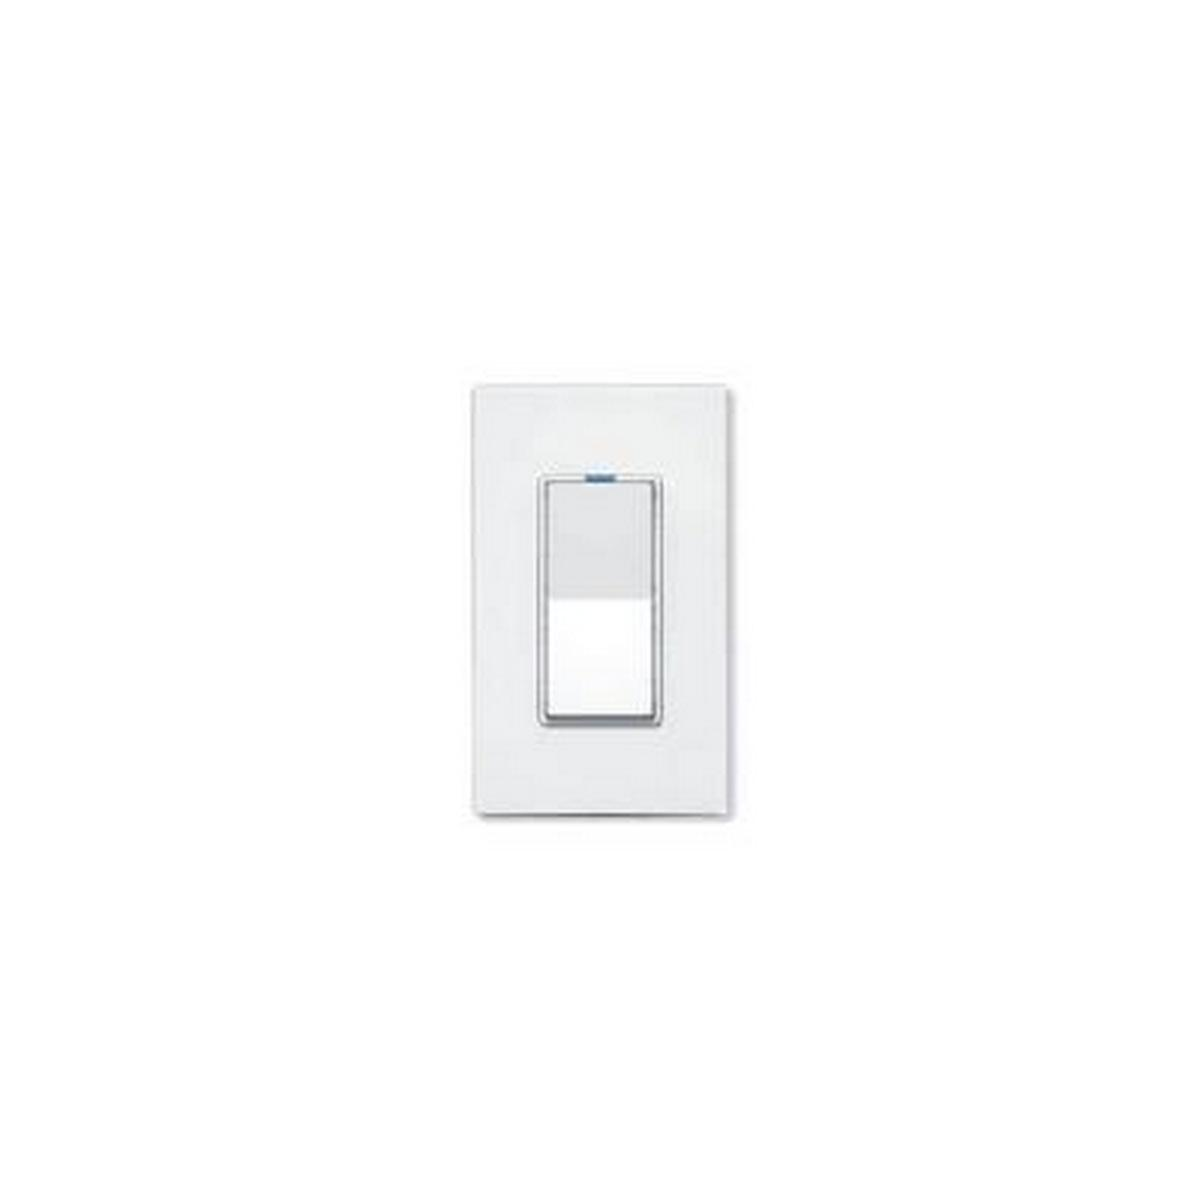 PulseWorx - Wall Switch/Dimmer-1500W/12.5A